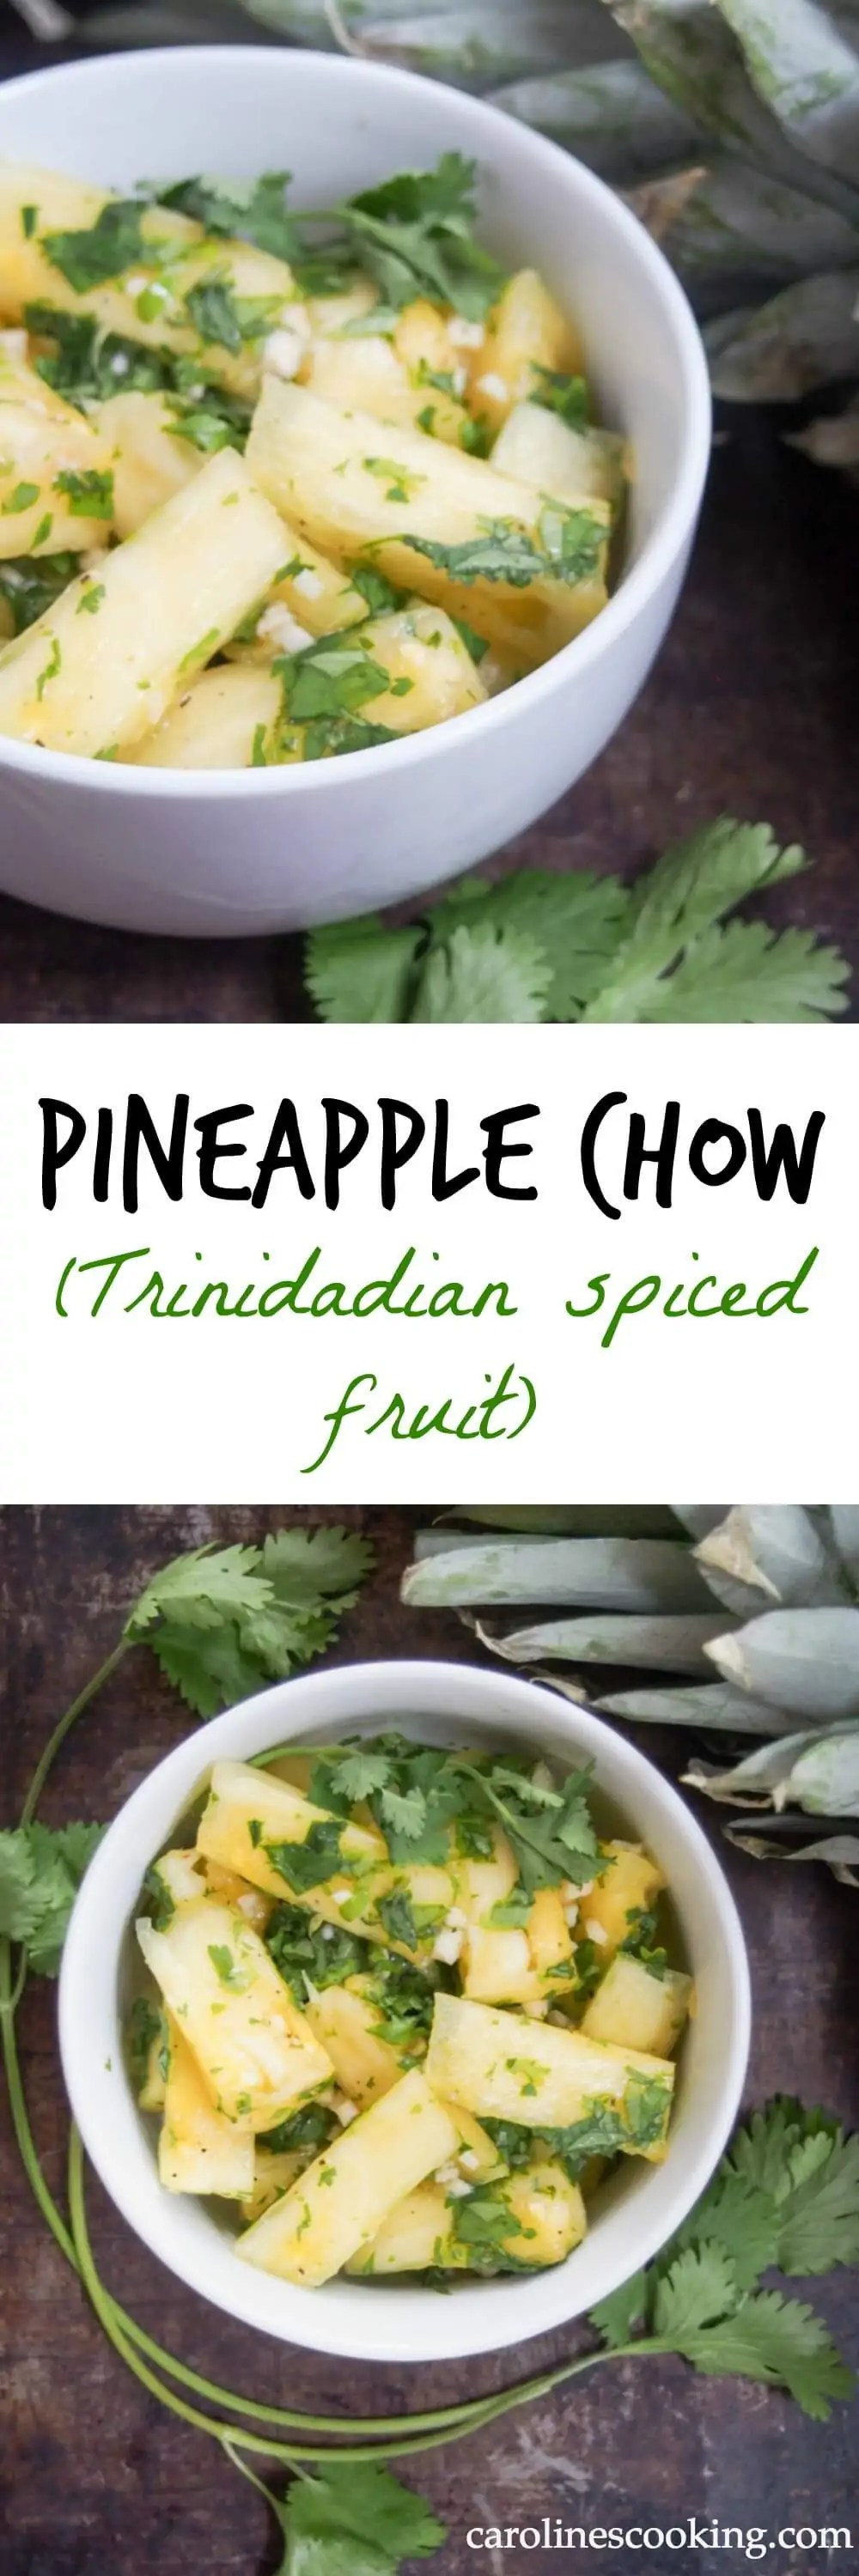 Pineapple chow (Trinidadian spiced fruit) - Pineapple chow is an incredibly easy Trinidadian snack/side with garlic, cilantro & chili. Sweet, salty & spicy it's refreshing and delicious.